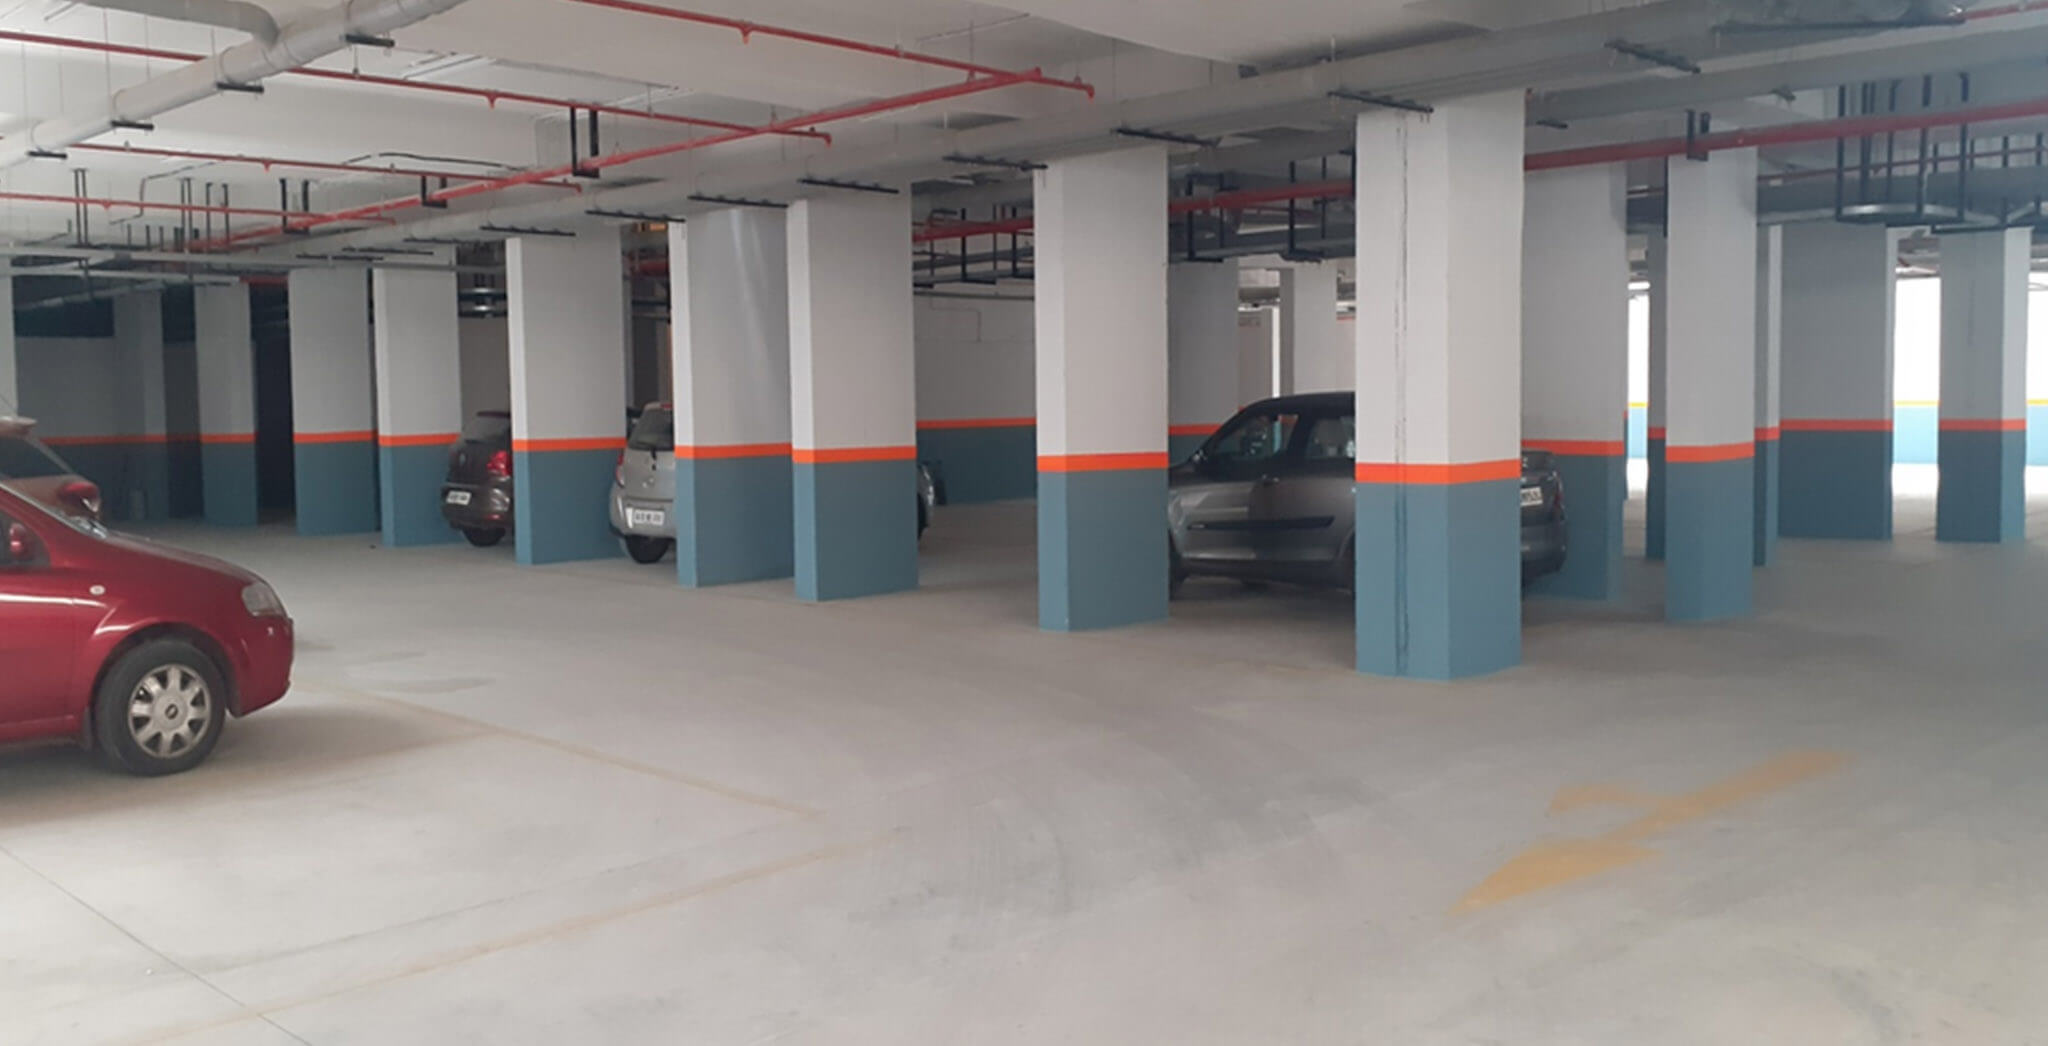 Mar 2020 - Plumeria phase 1: Basement—painting and  car park marking completed